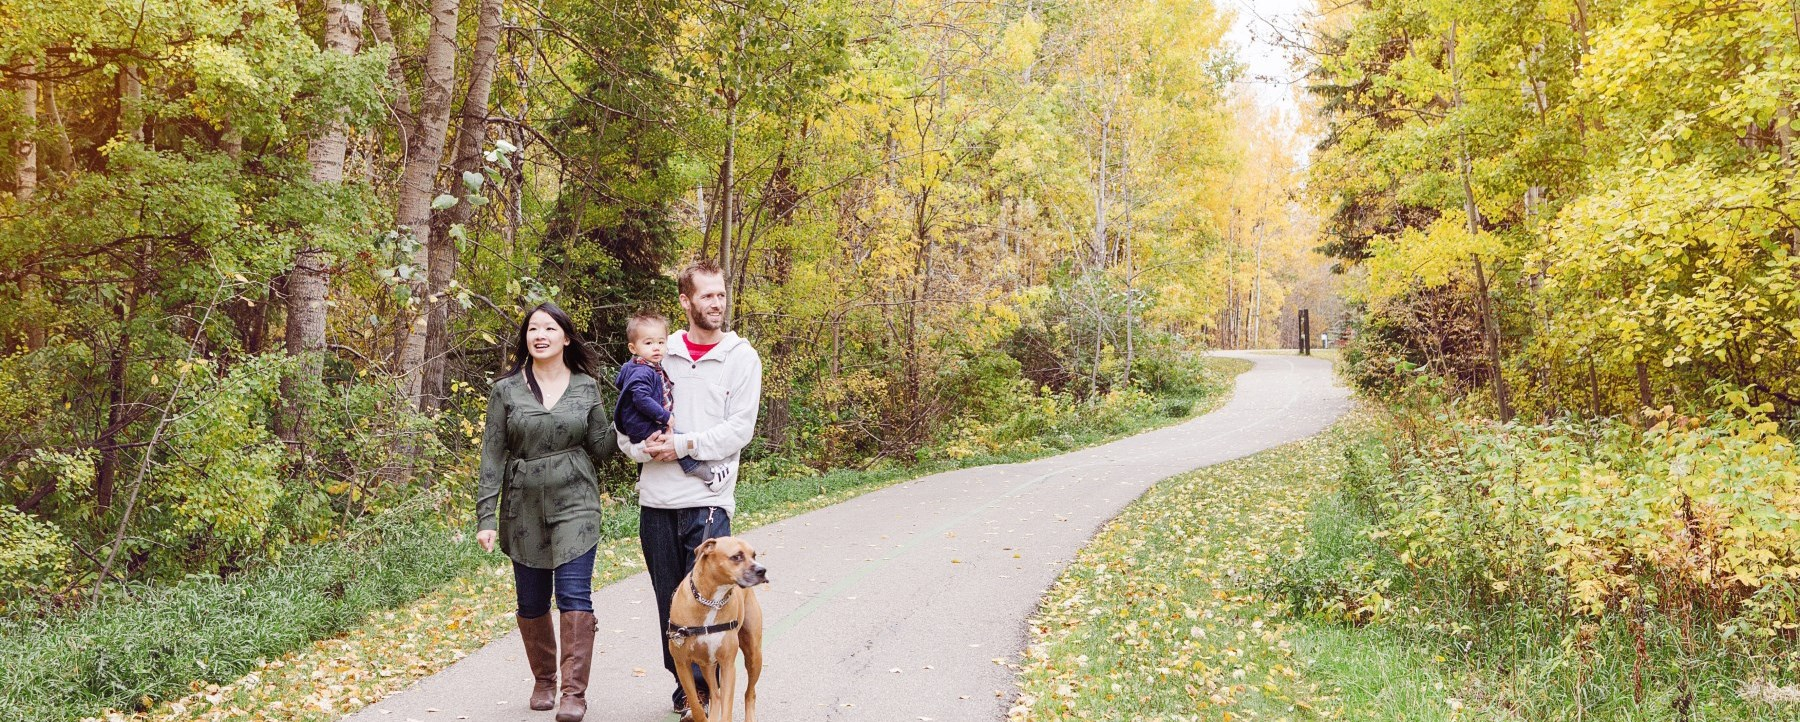 family walking on path in fall